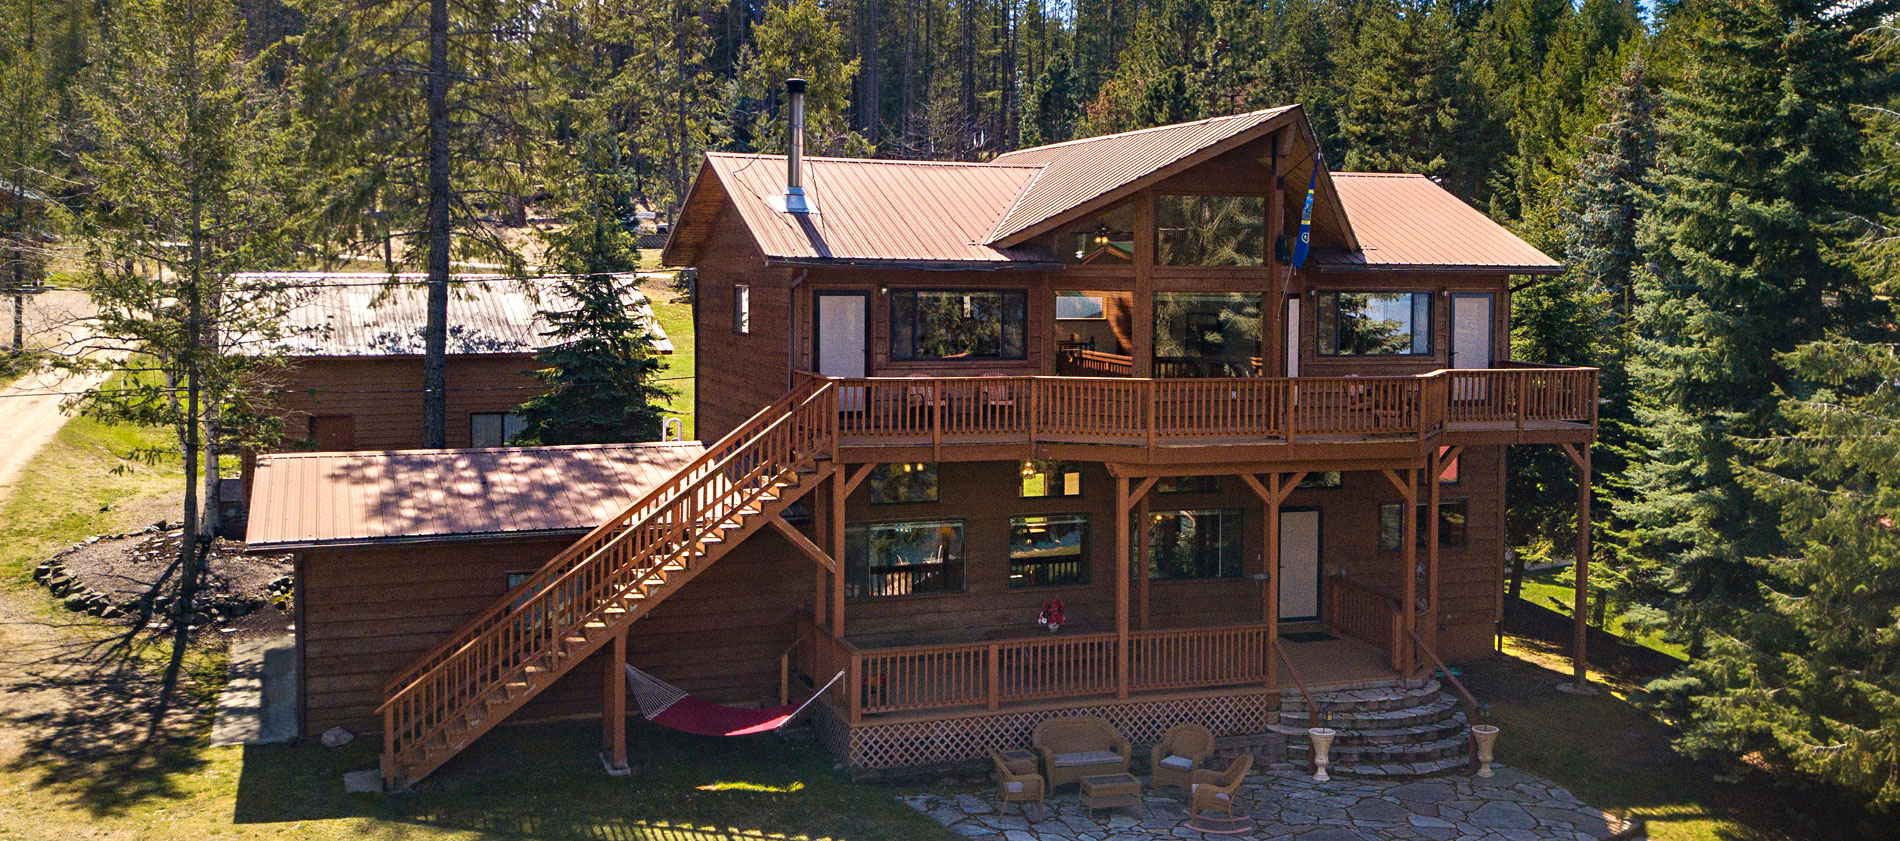 LAKEFRONT/VIEW HOME ON 1.02ACRE W/95FF OF DEEP WATER ON THE PRISTINE SHORES OF LAKE PEND OREILLE